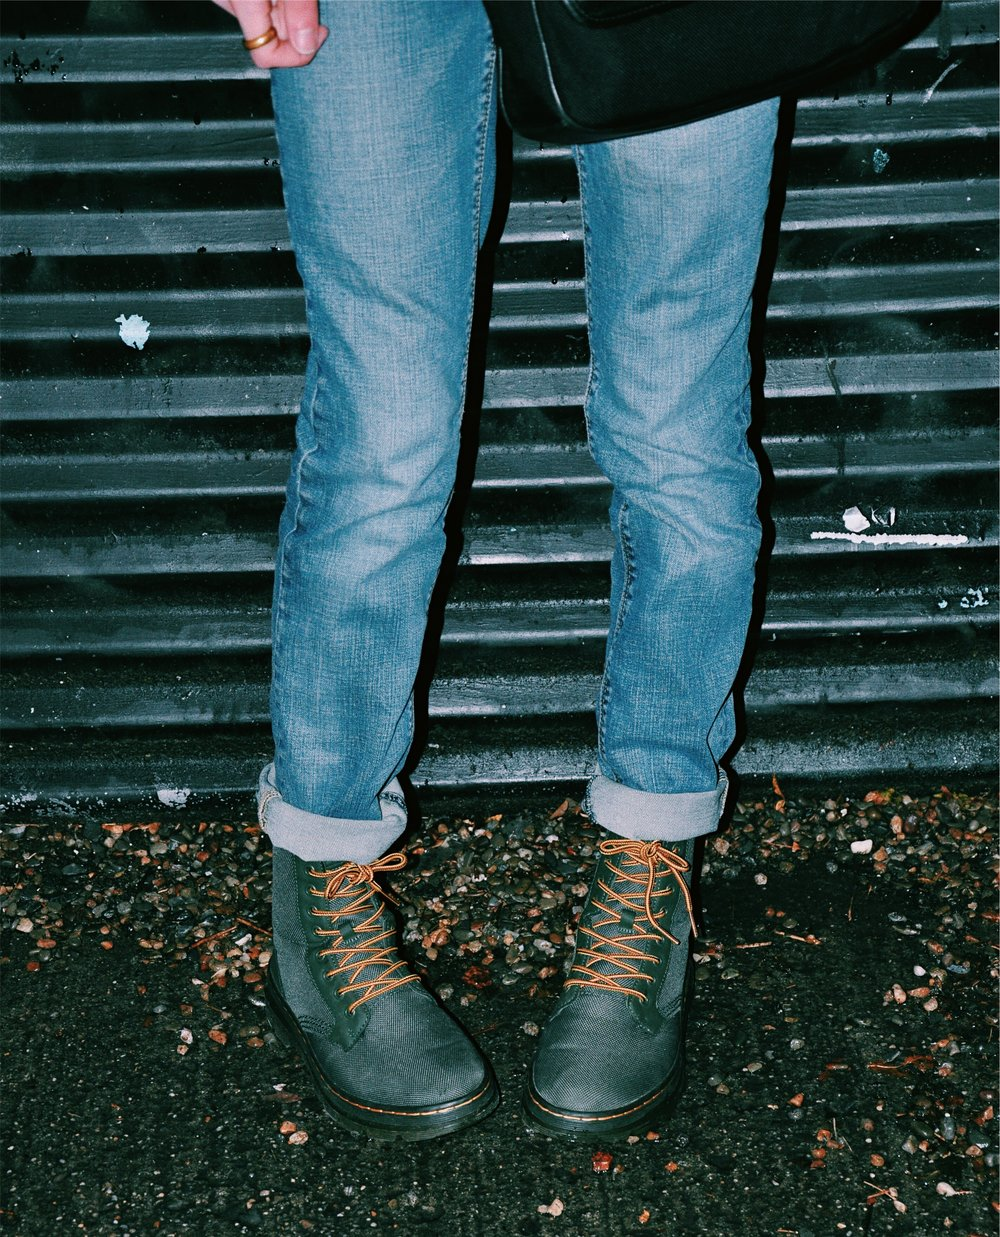 Green Dr. Martens with 7 For All Mankind Denim